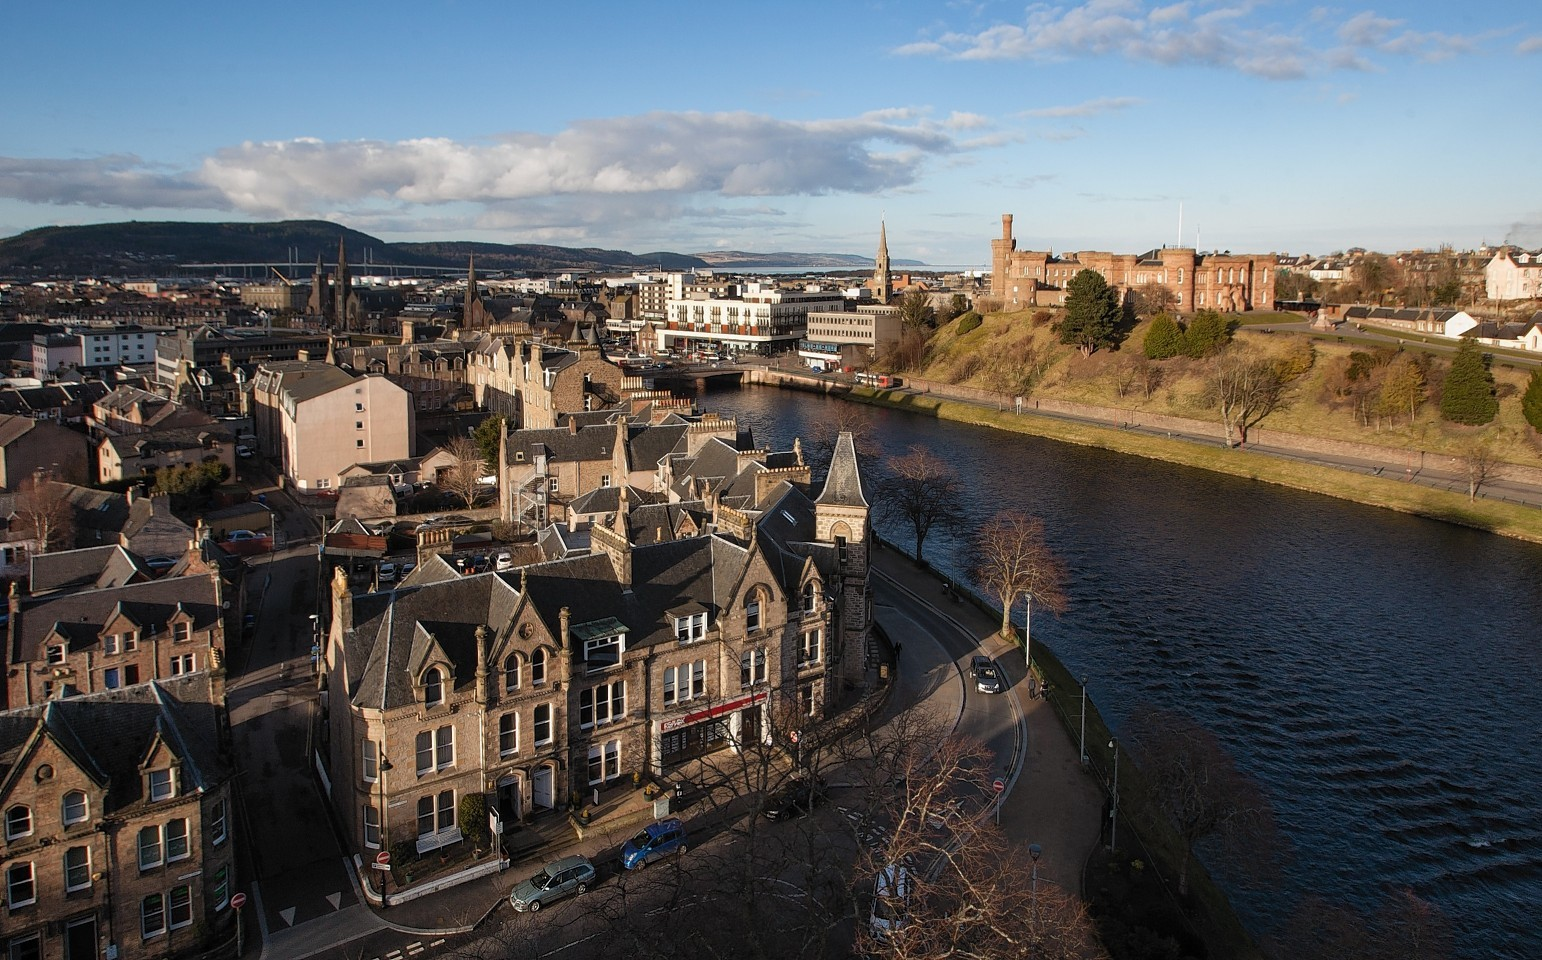 Inverness continues to prove popular with tourists